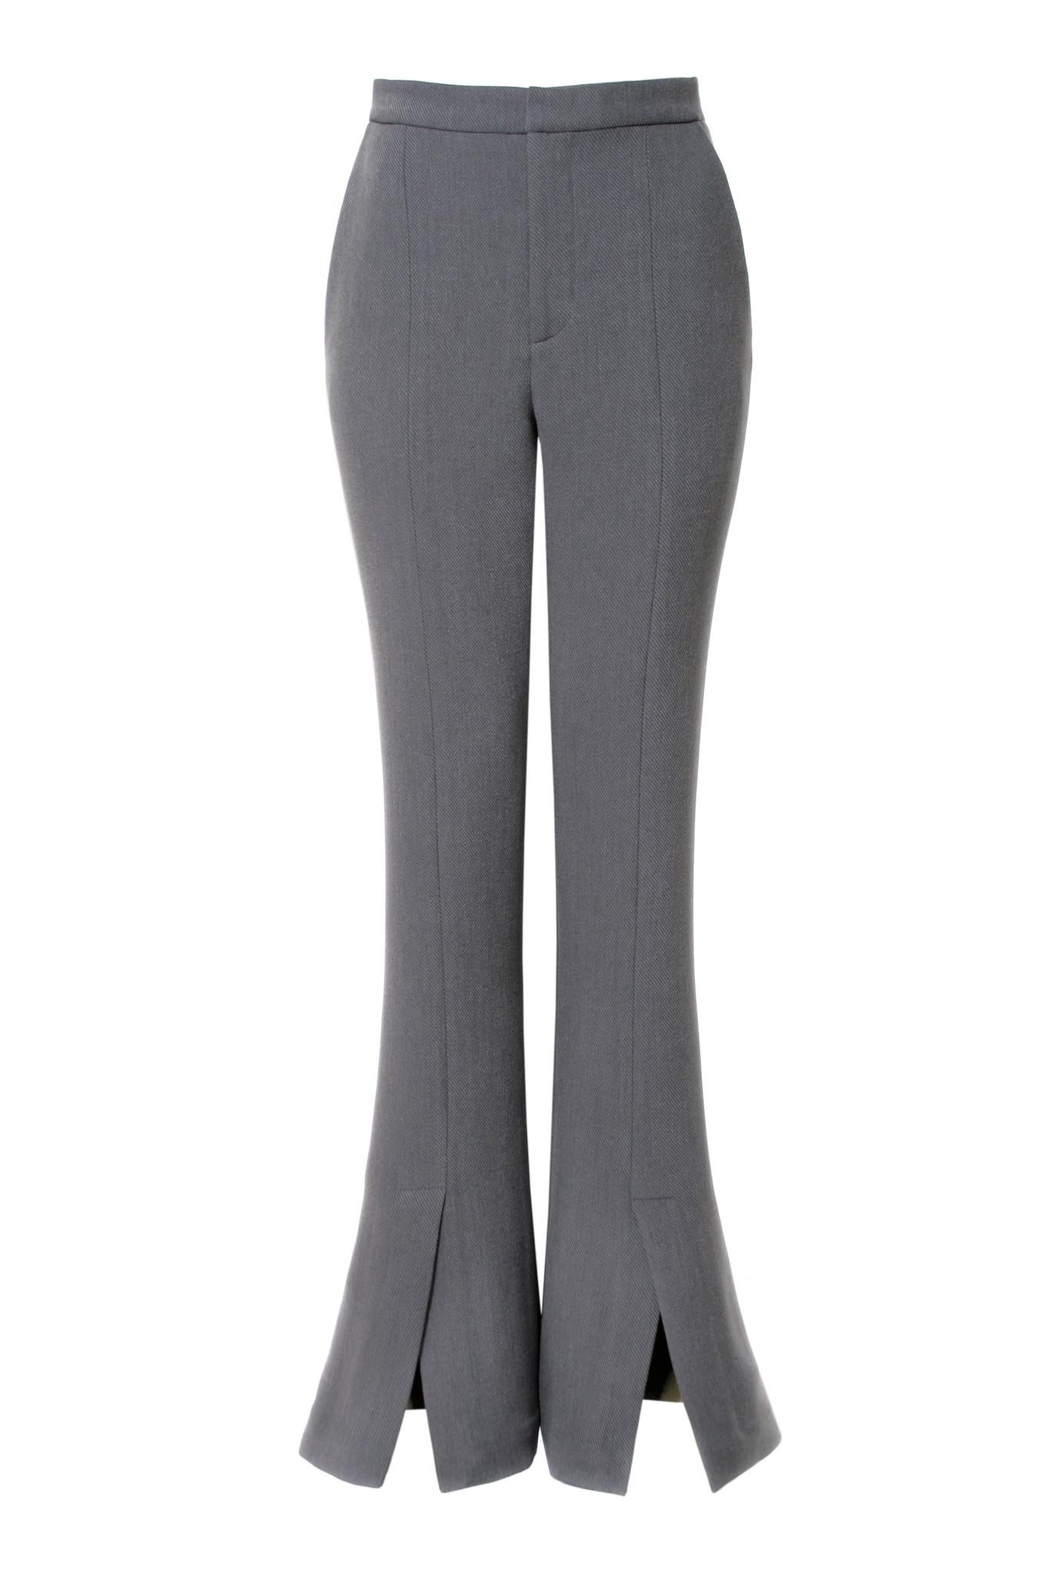 AGGI Pants Monica Baltic Grey - Height 165 - Front Full Image